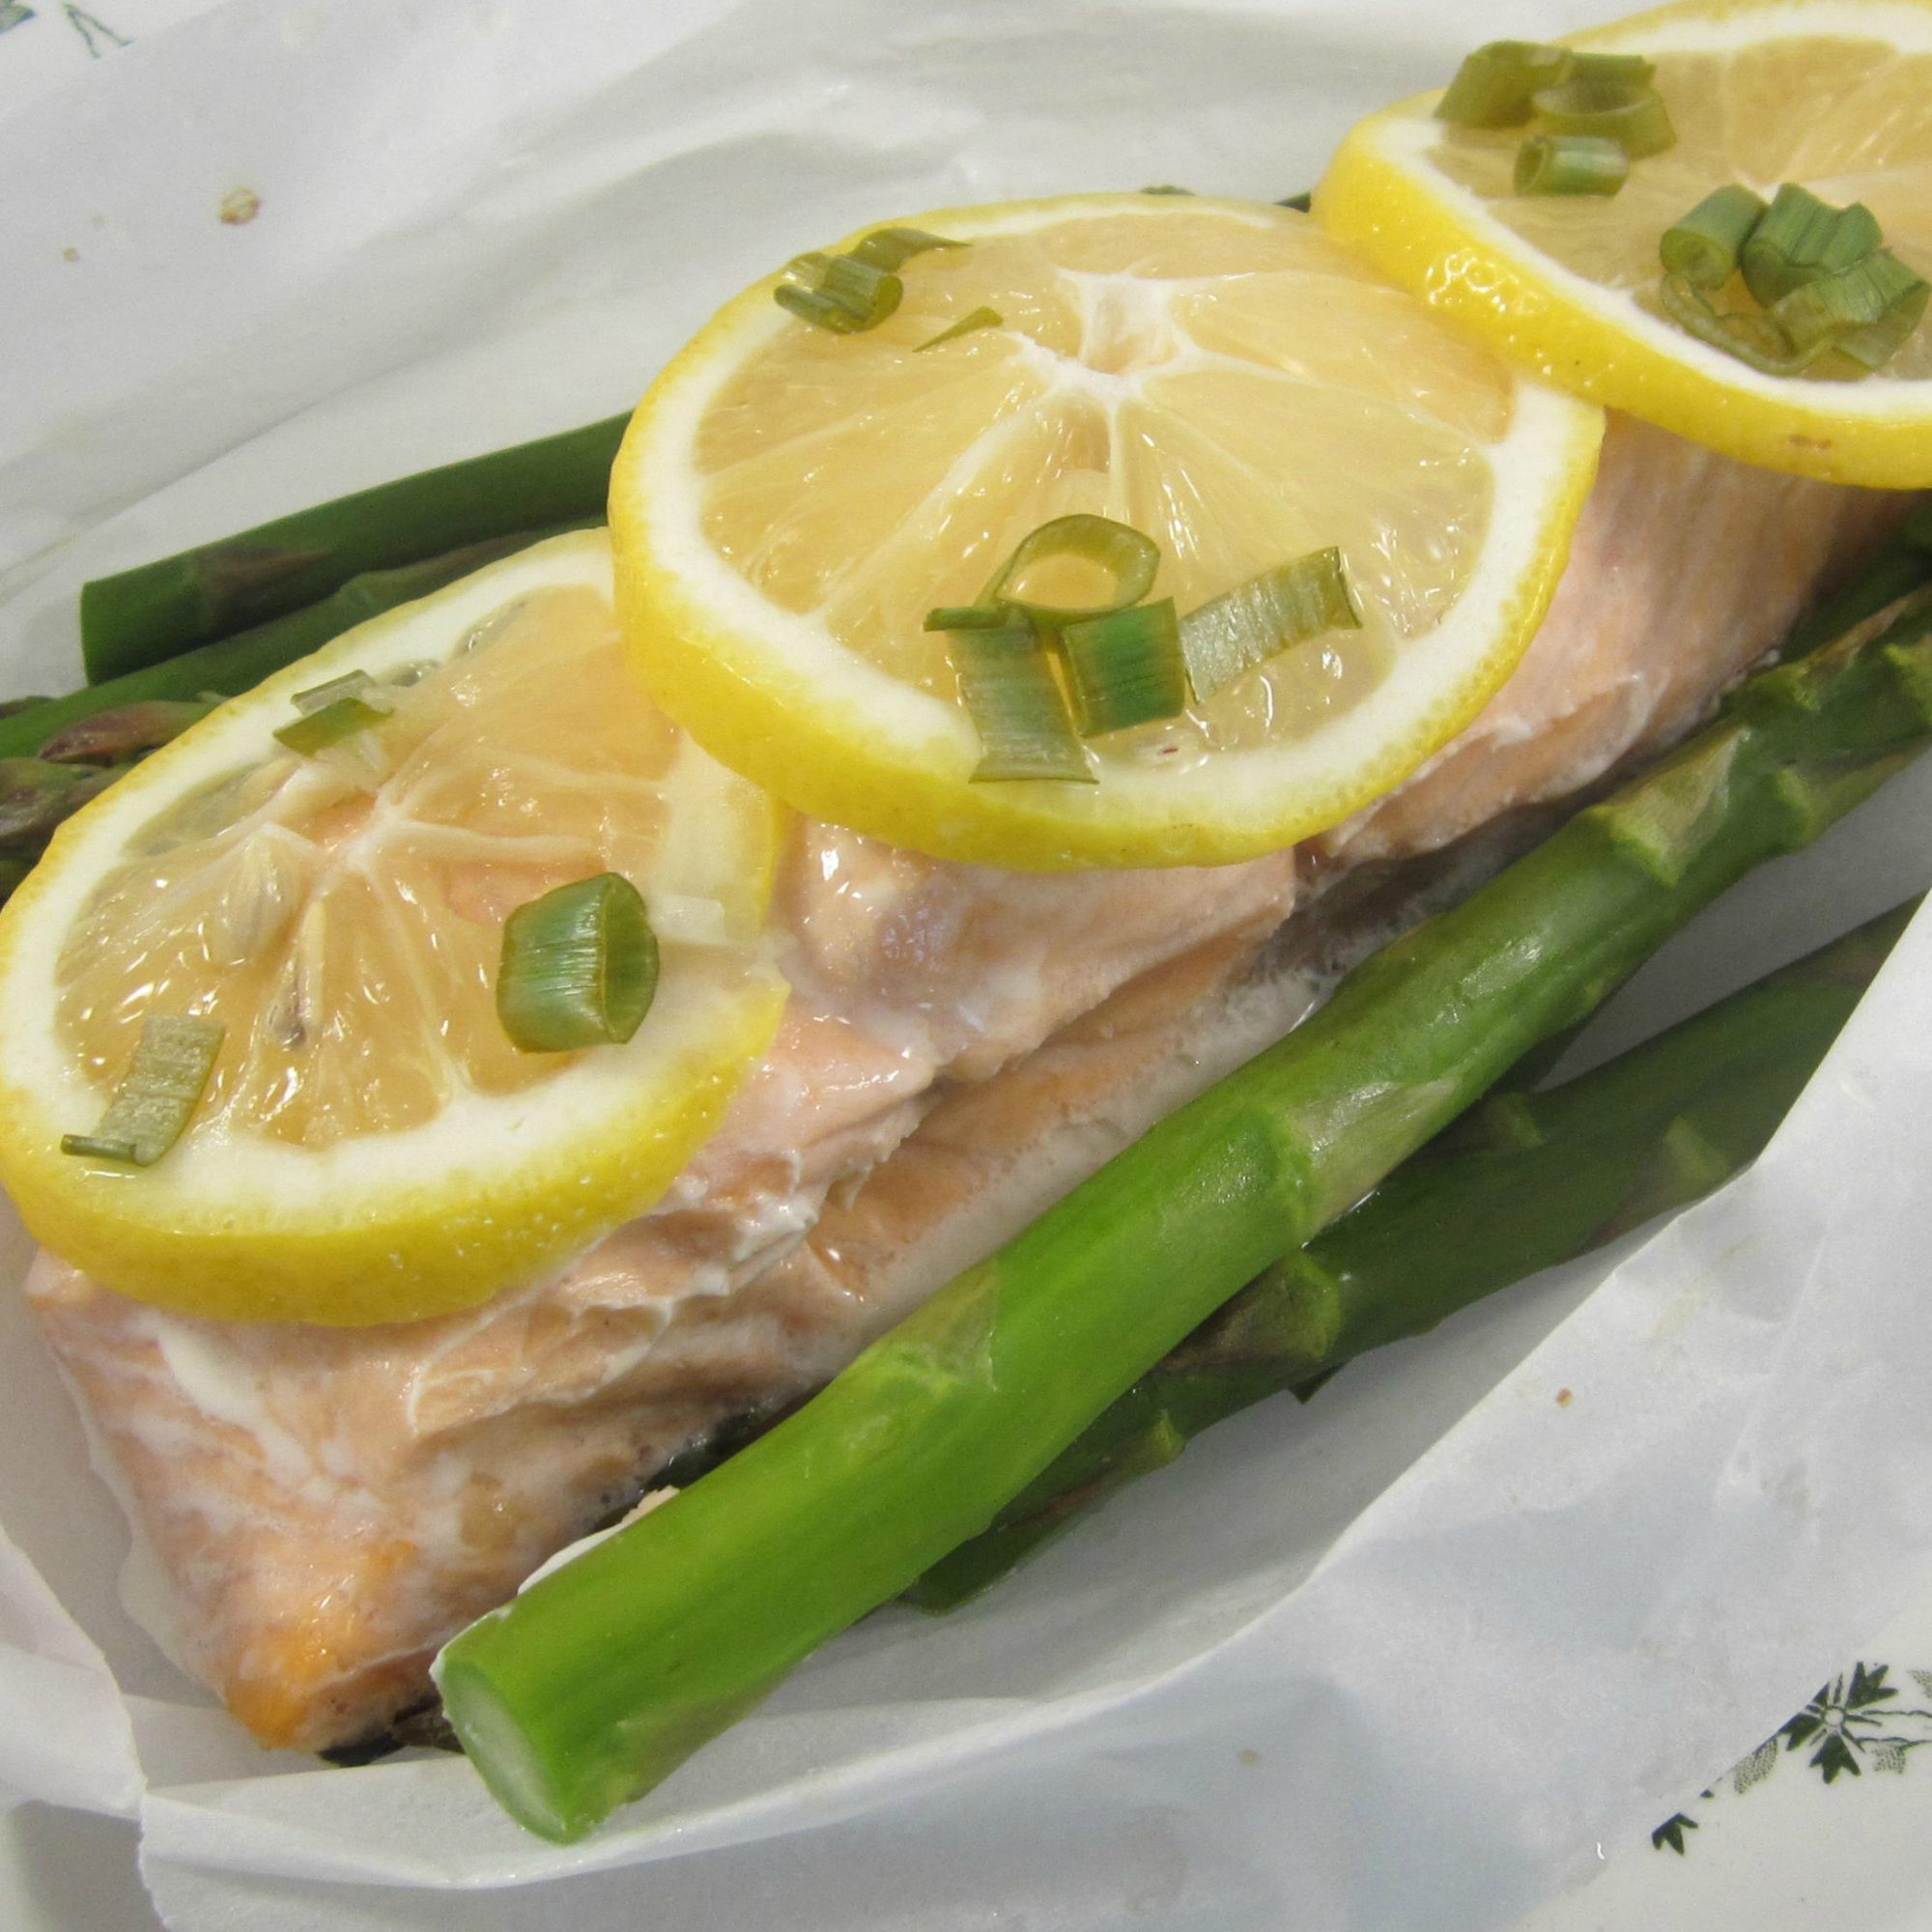 salmon fillet with lemon and asparagus in parchment paper